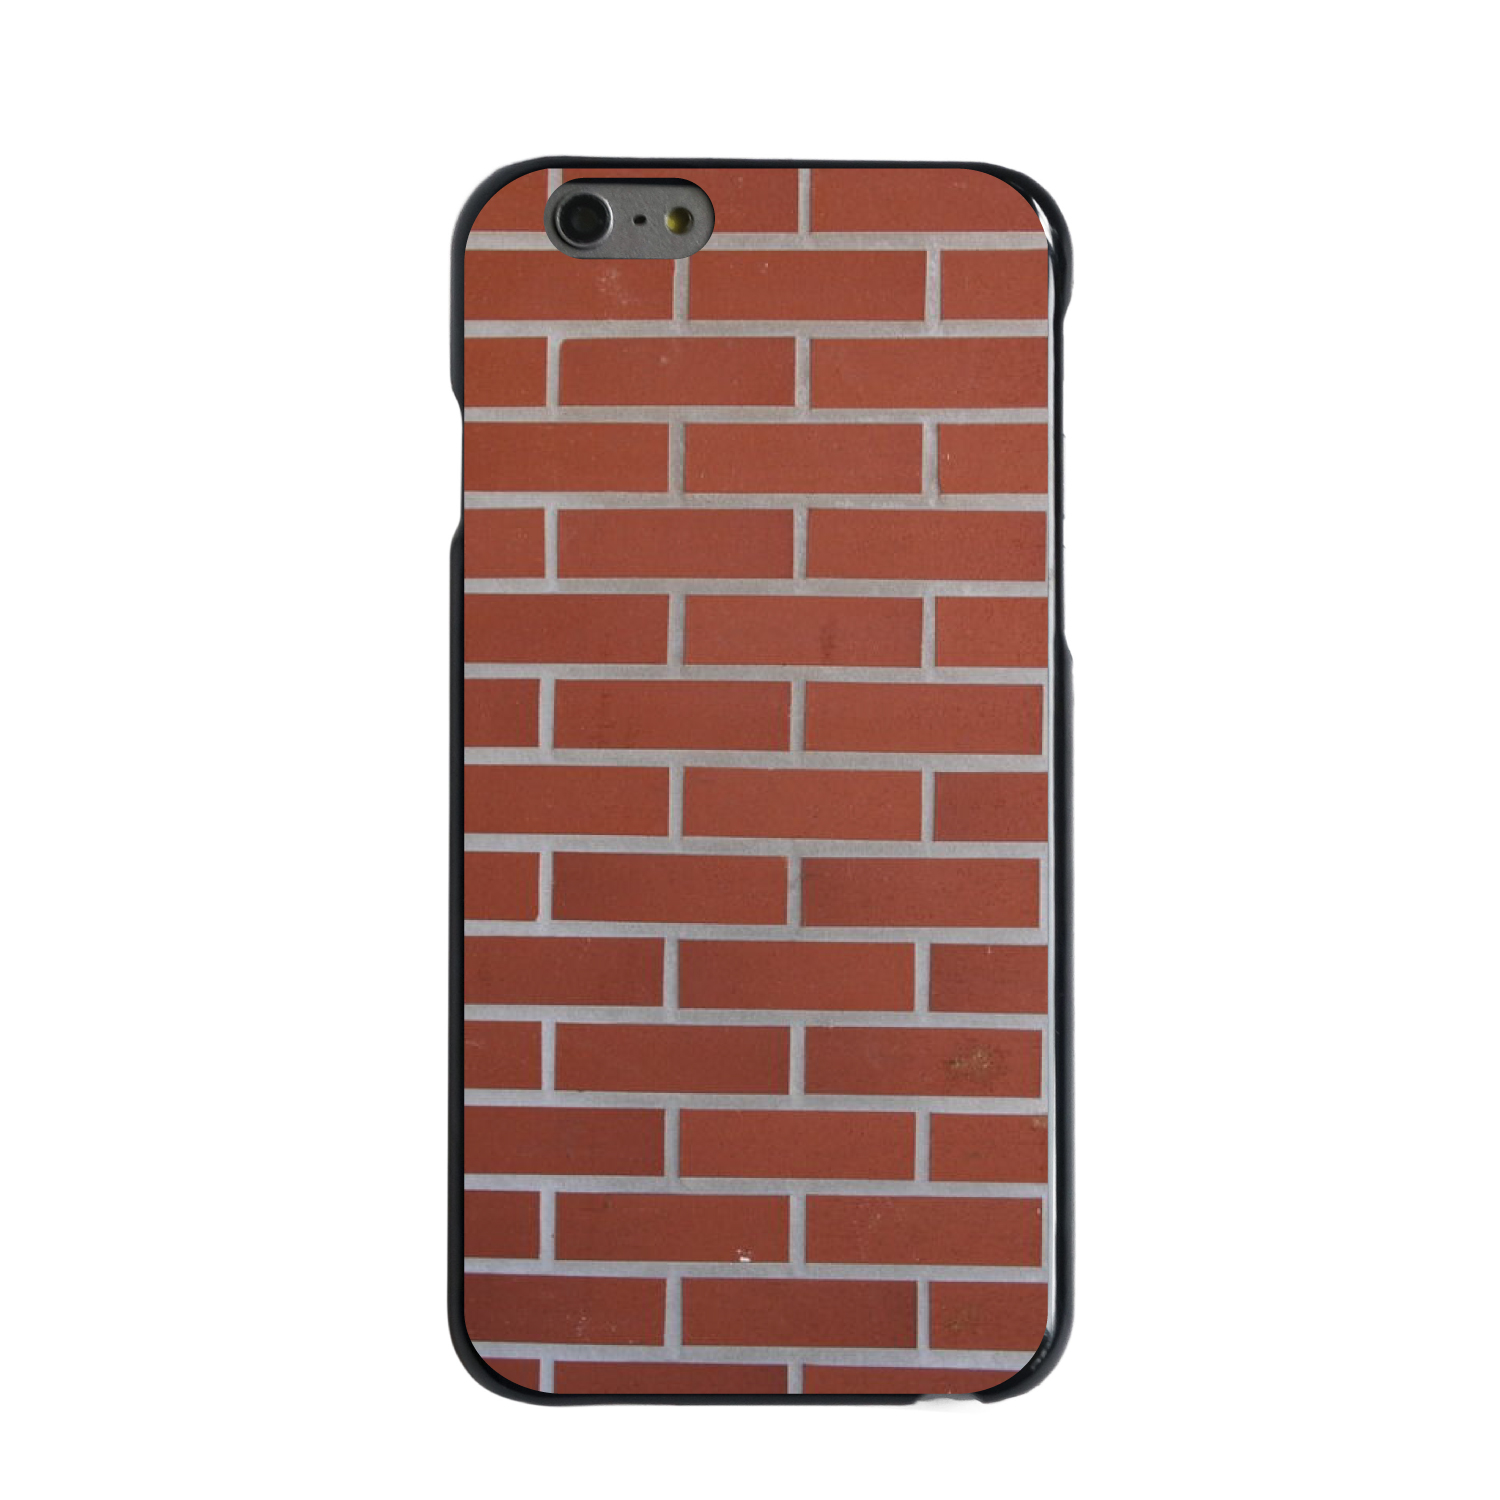 "CUSTOM Black Hard Plastic Snap-On Case for Apple iPhone 7 PLUS / 8 PLUS (5.5"" Screen) - New Red Brick Wall"